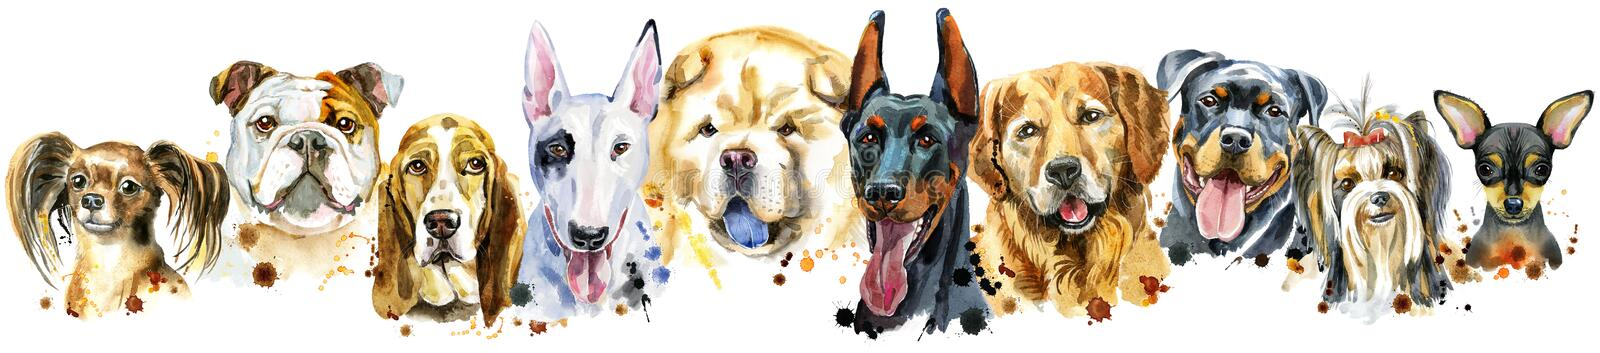 Border from watercolor portraits of dogs for decoration royalty free stock image